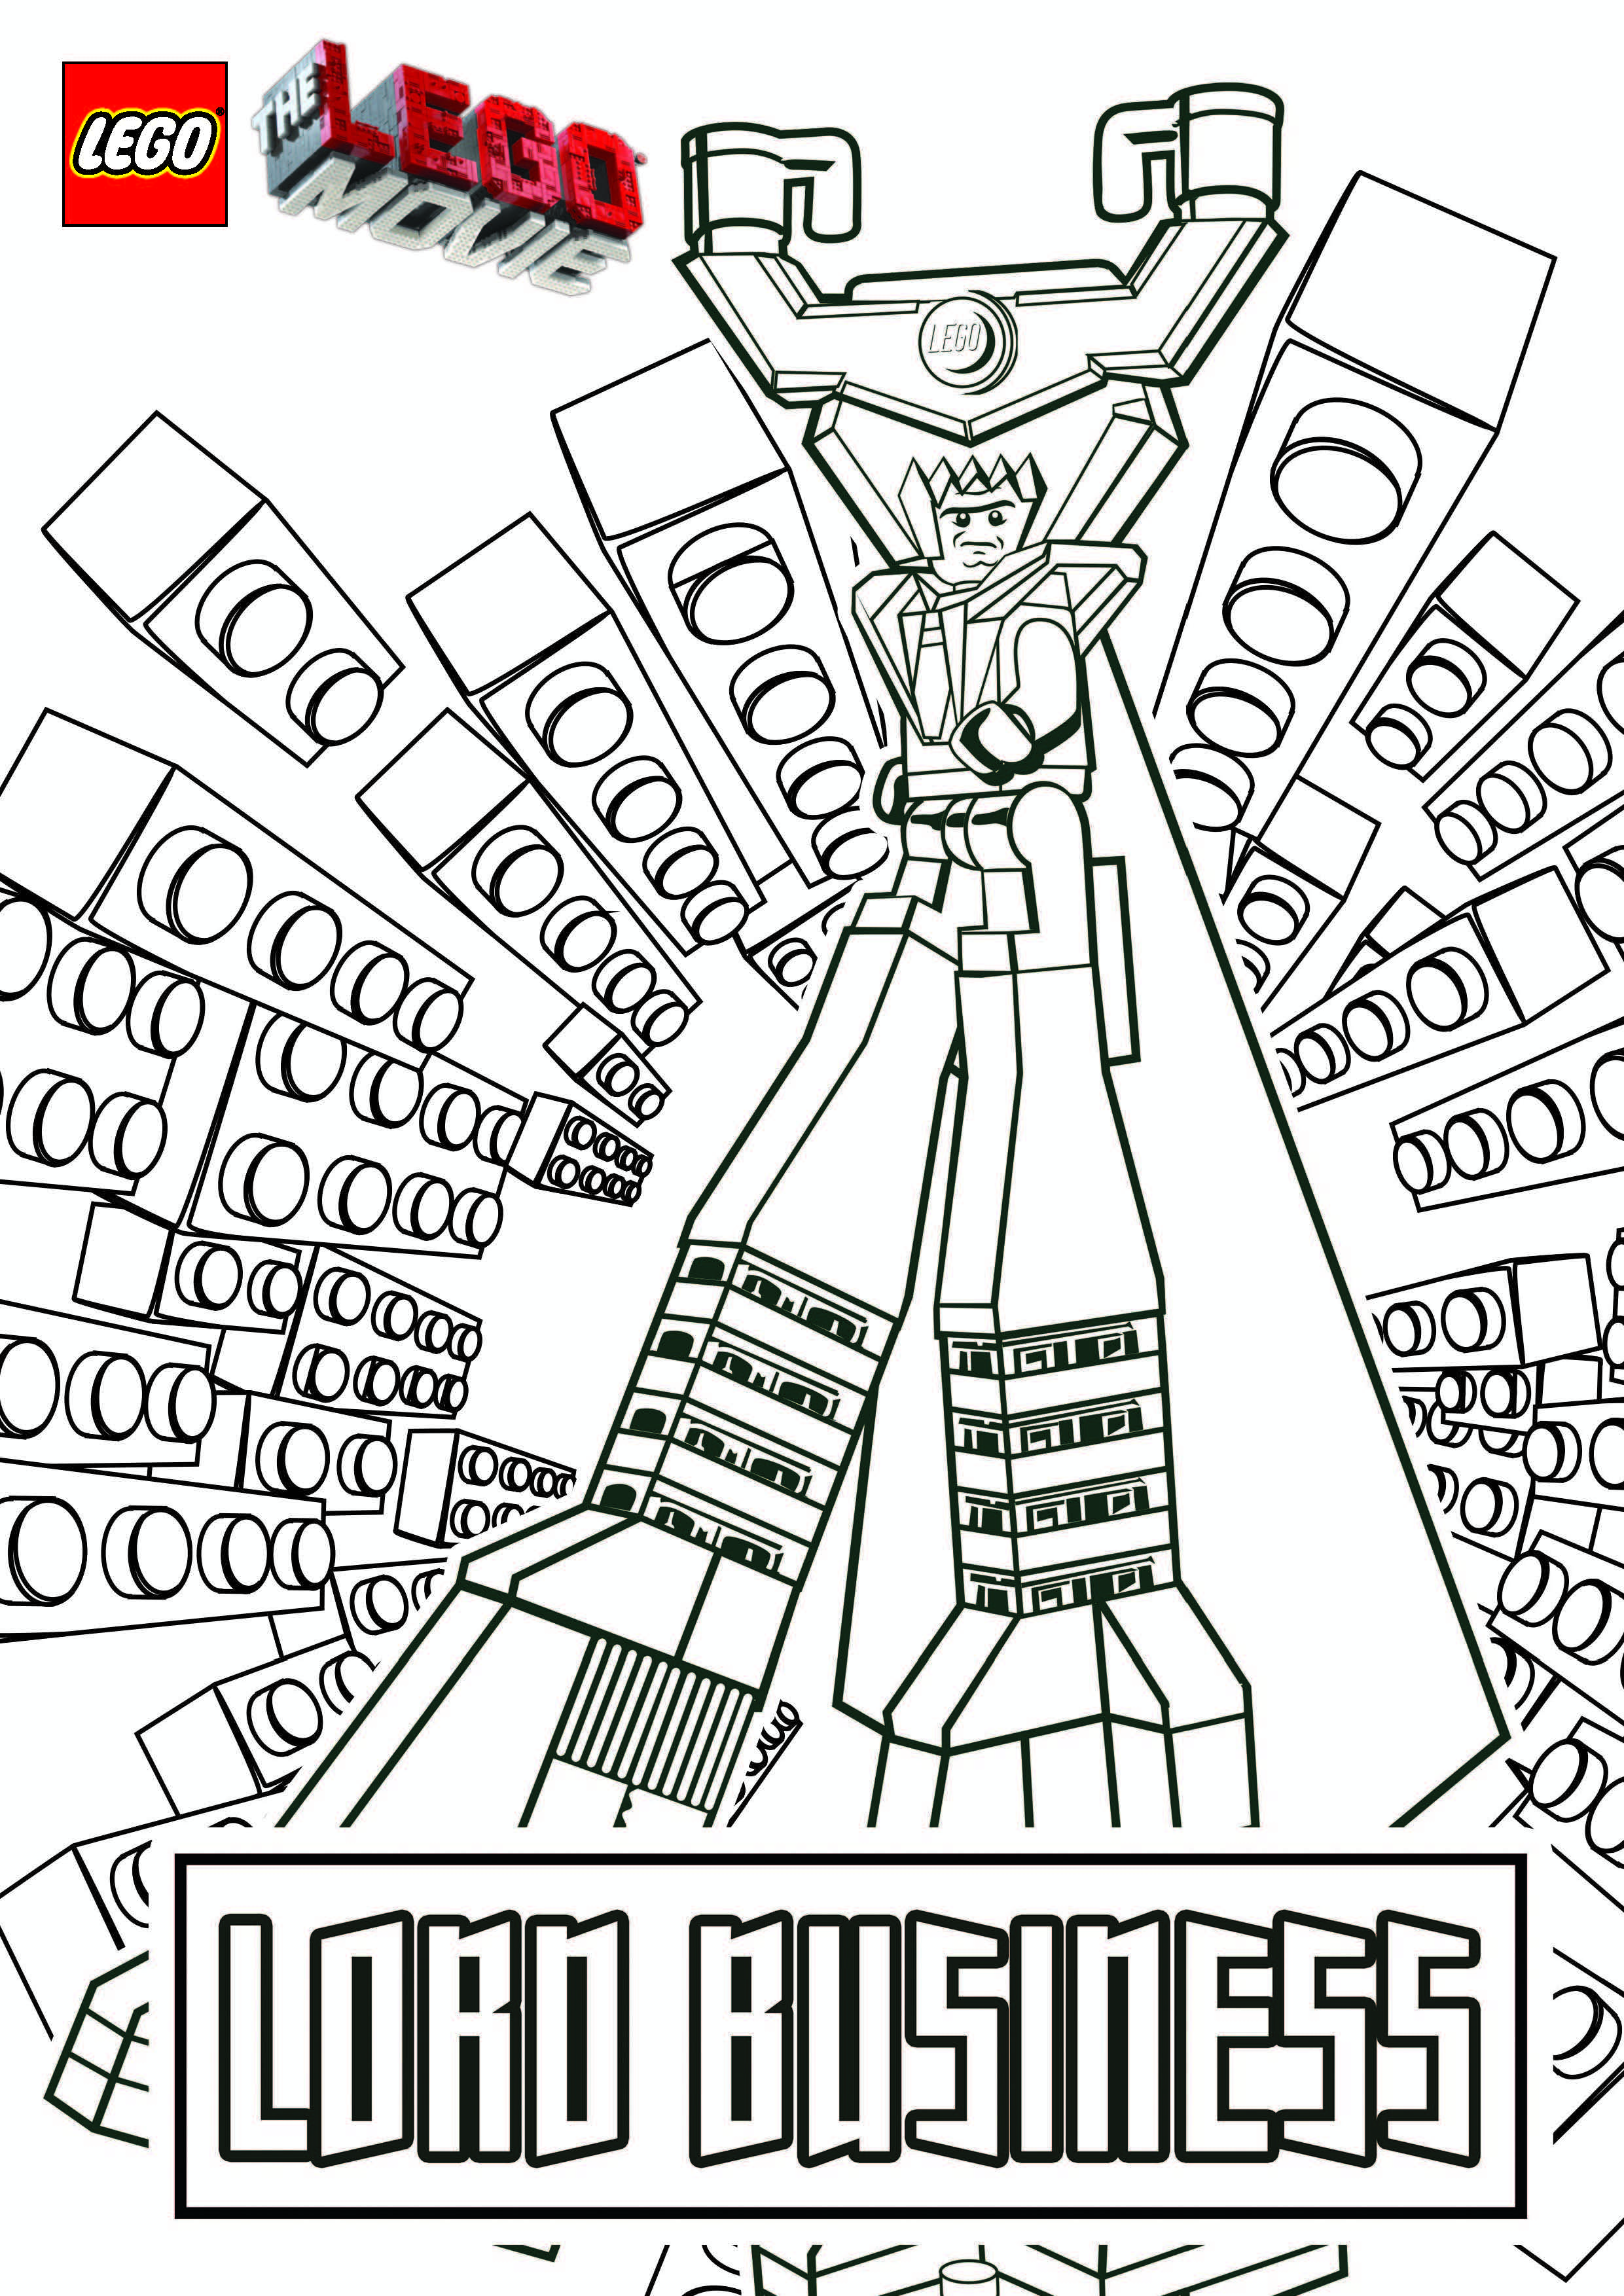 Lego Movie Printables - Coloring Pages for Kids and for Adults